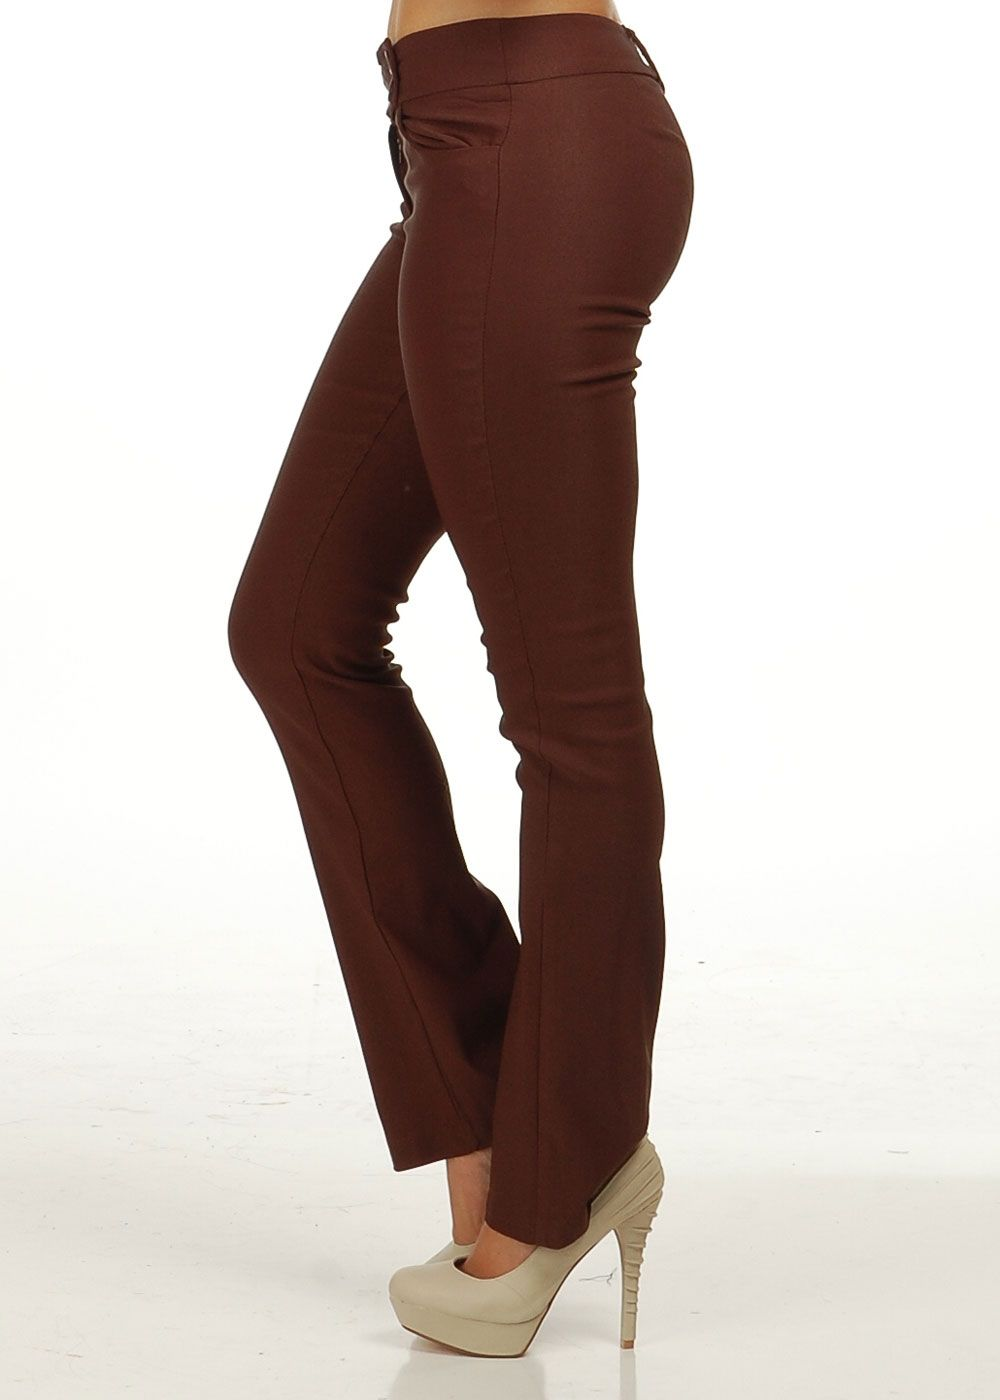 0b78009bf Brown Pants Outfit for Women | Chic Business Pants- Brown Dress Pants-  Women's Business Pants